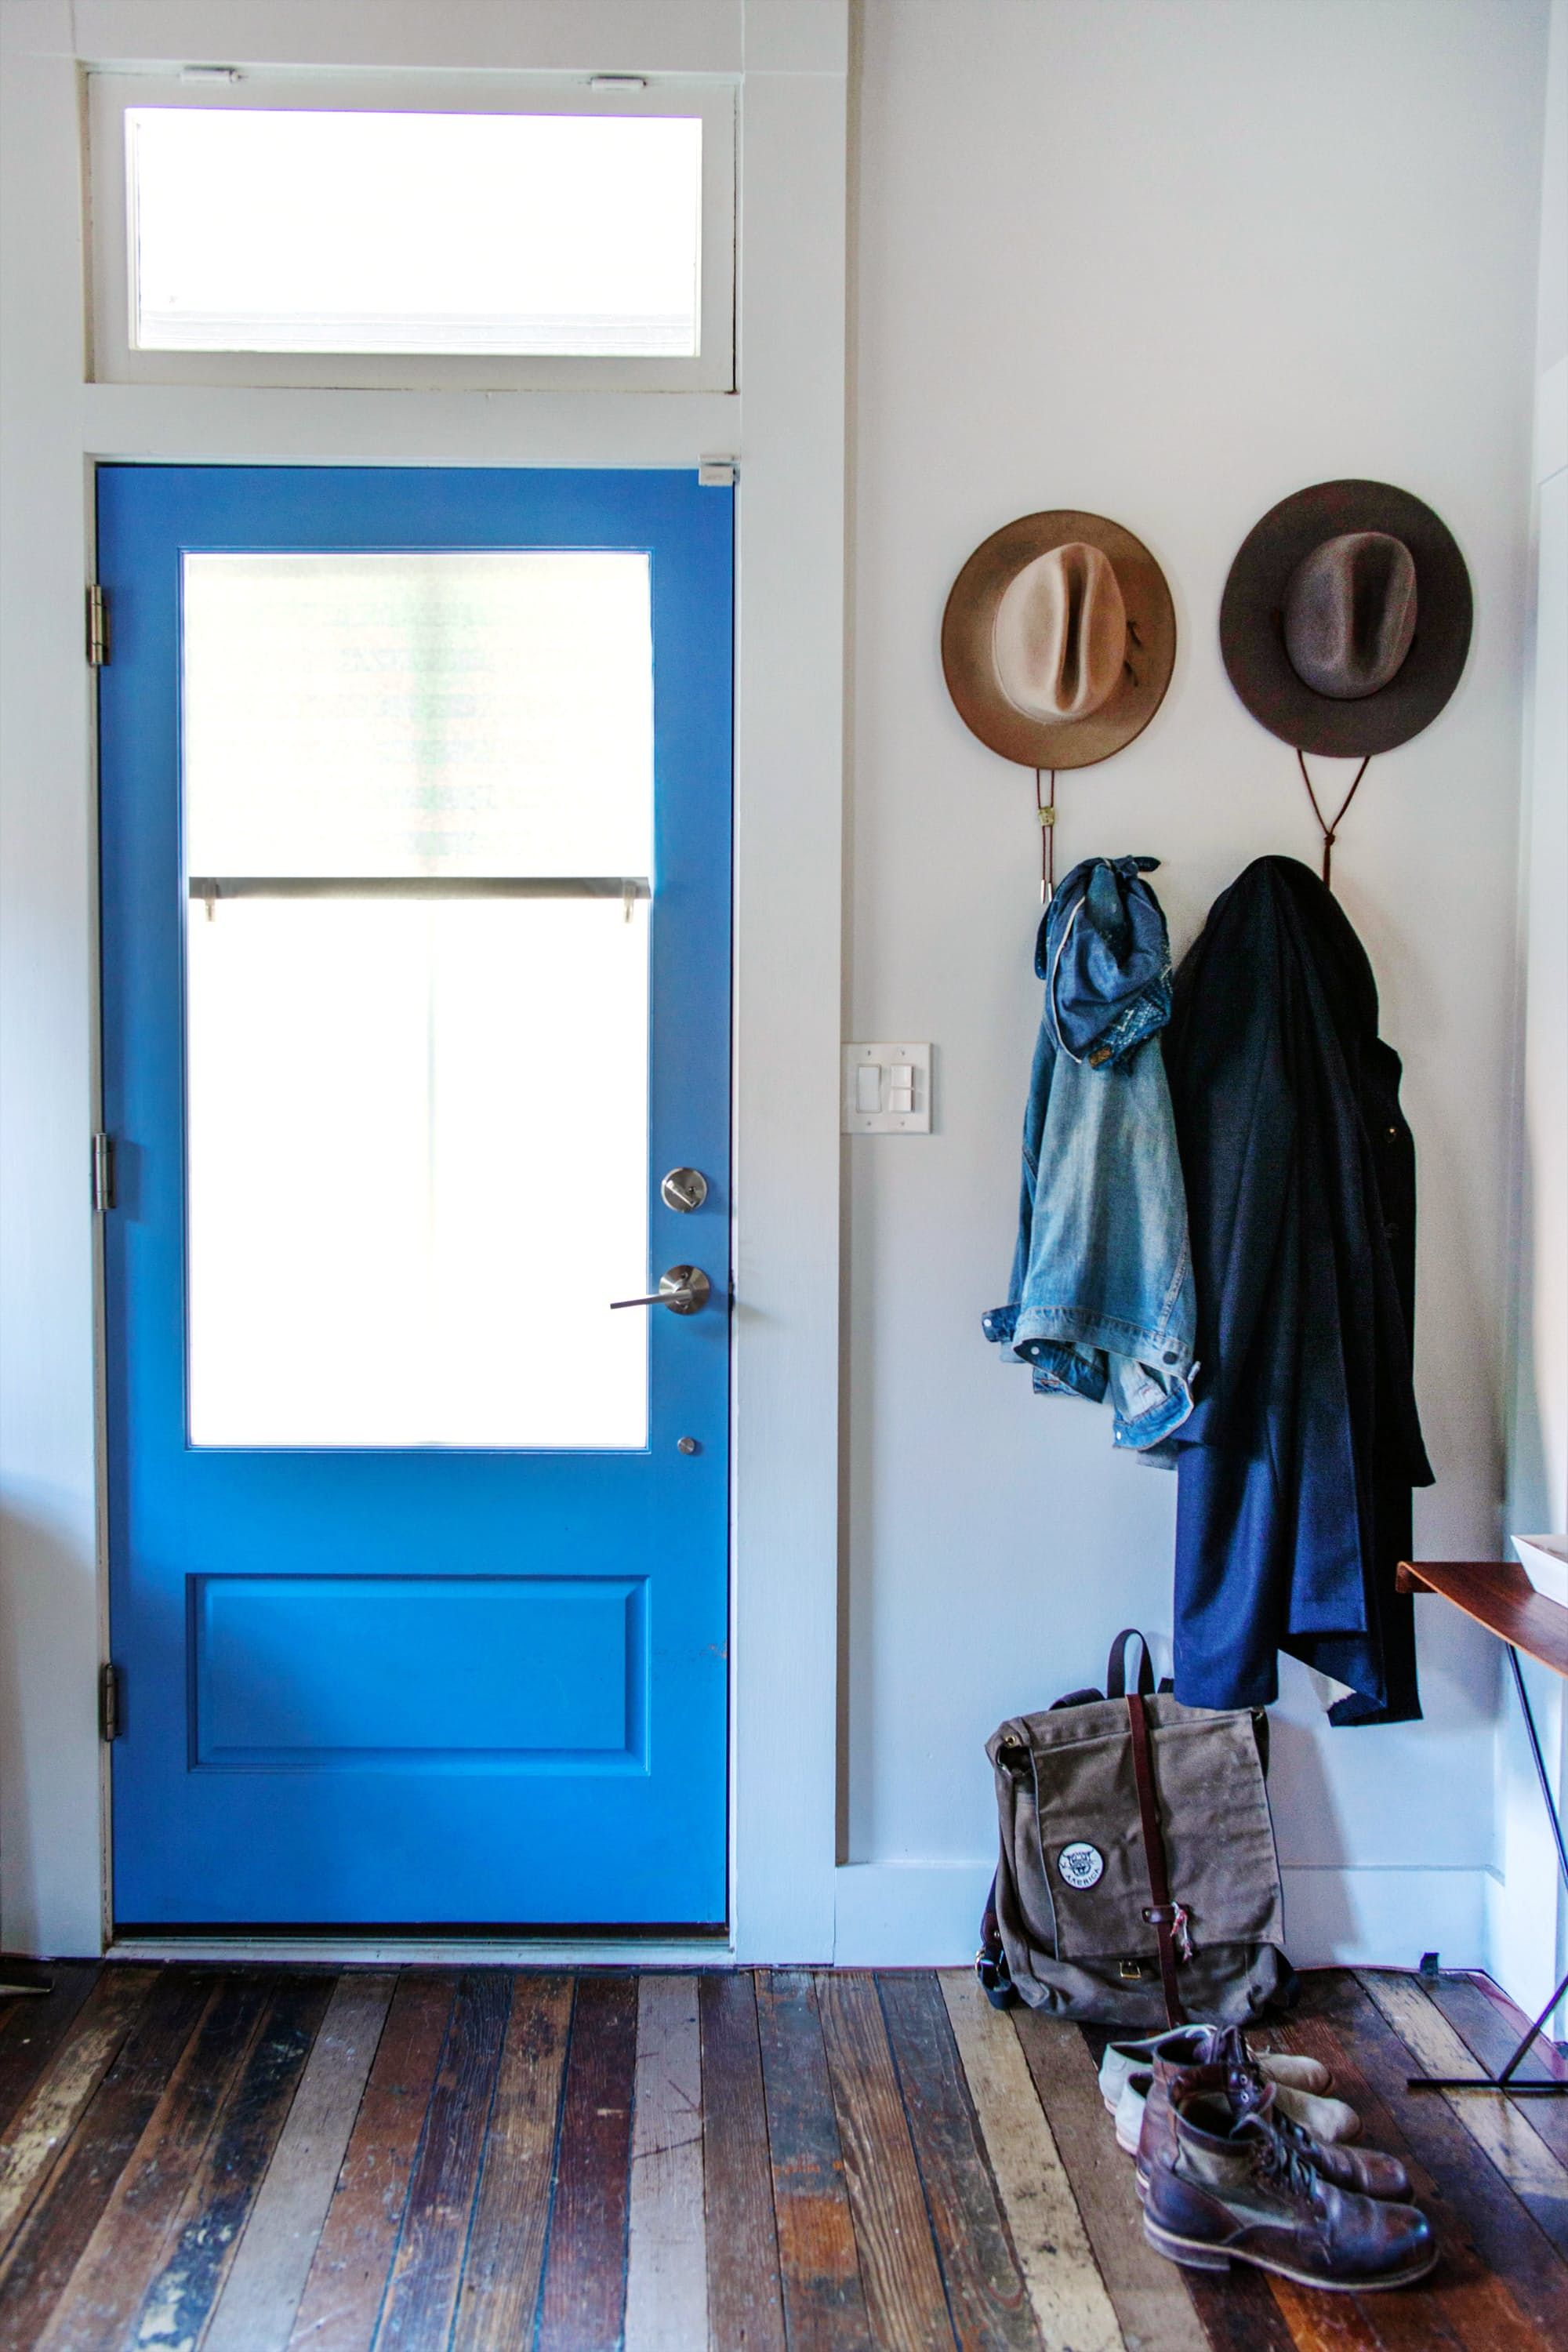 The Big List of Small Space Solutions: 161 Ways to Add a Little More Storage to Every Room in Your Home